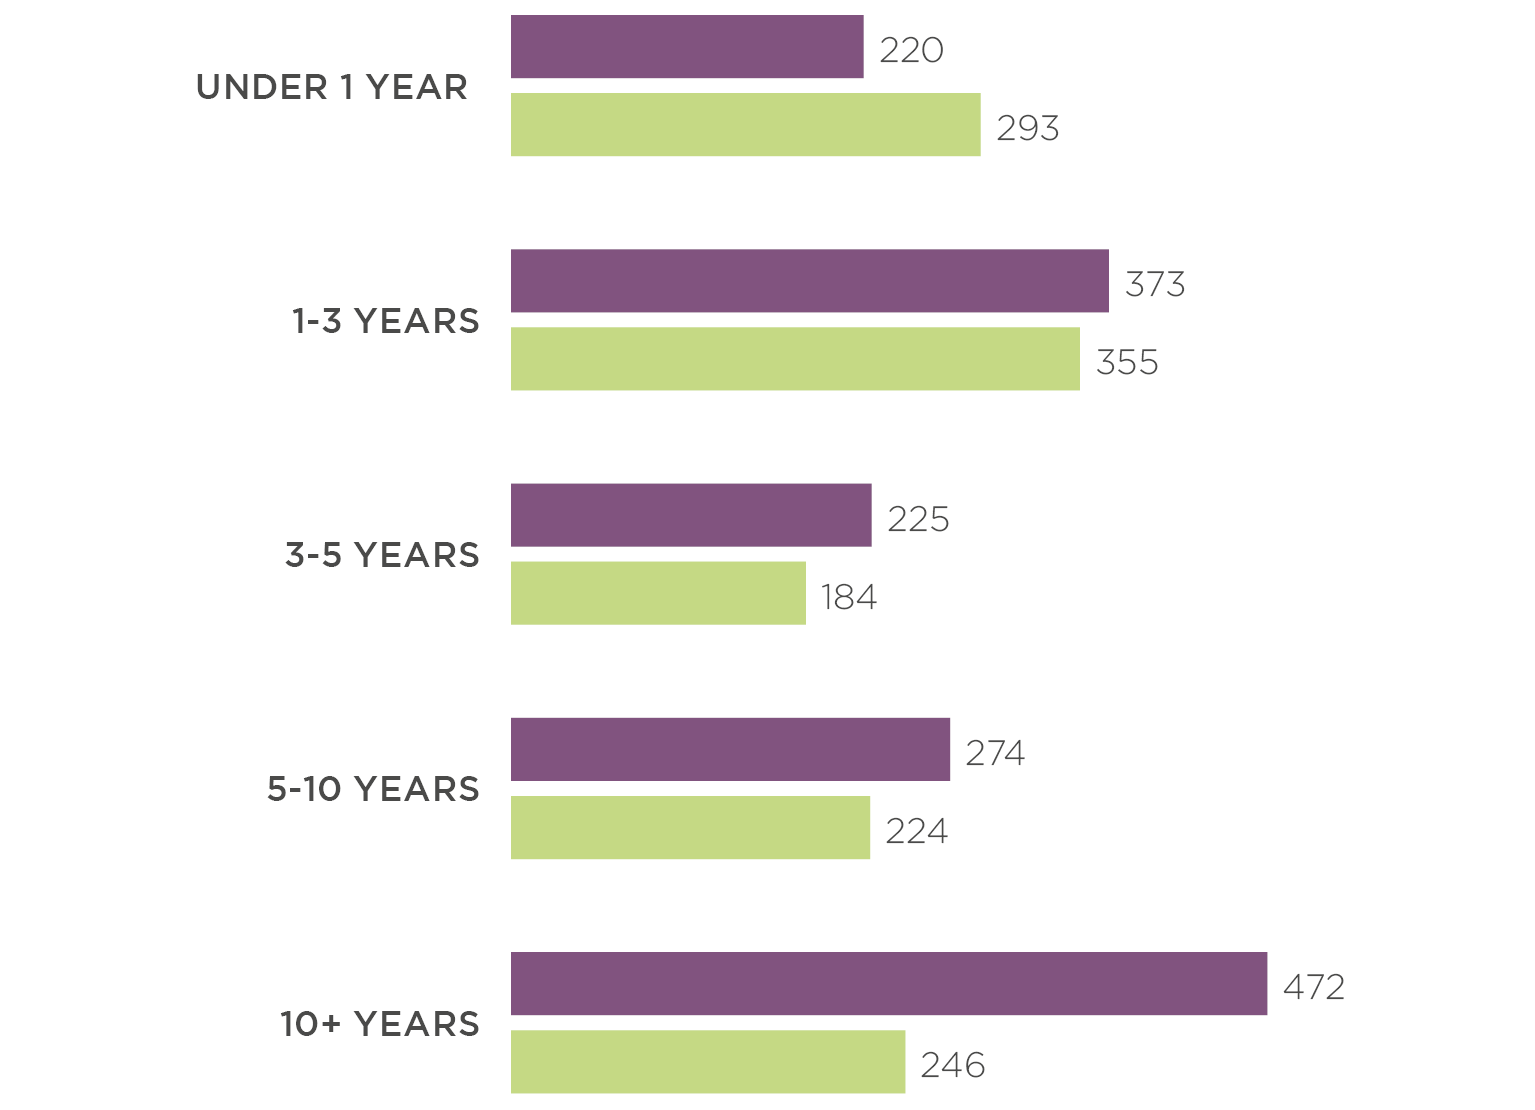 Gender and Time at the Company